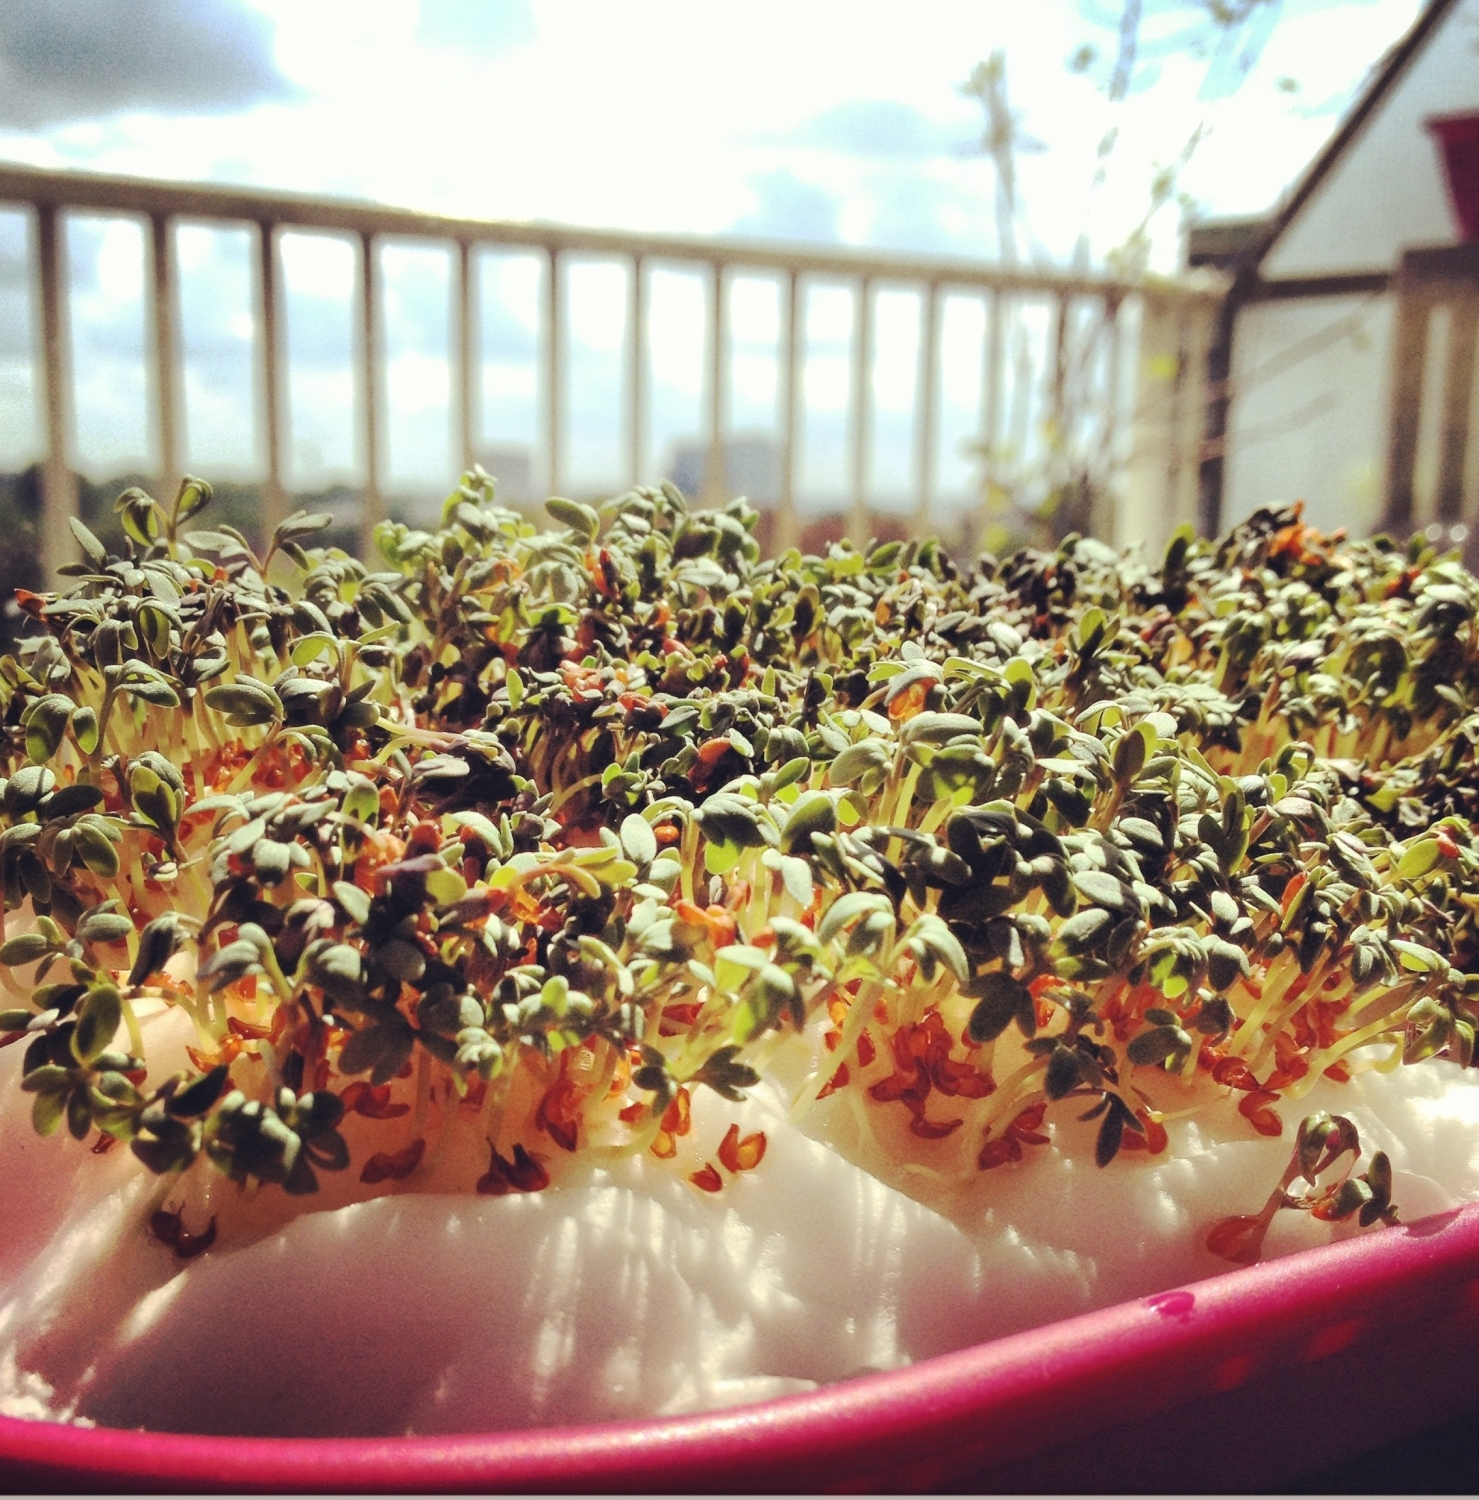 Planting the Cress